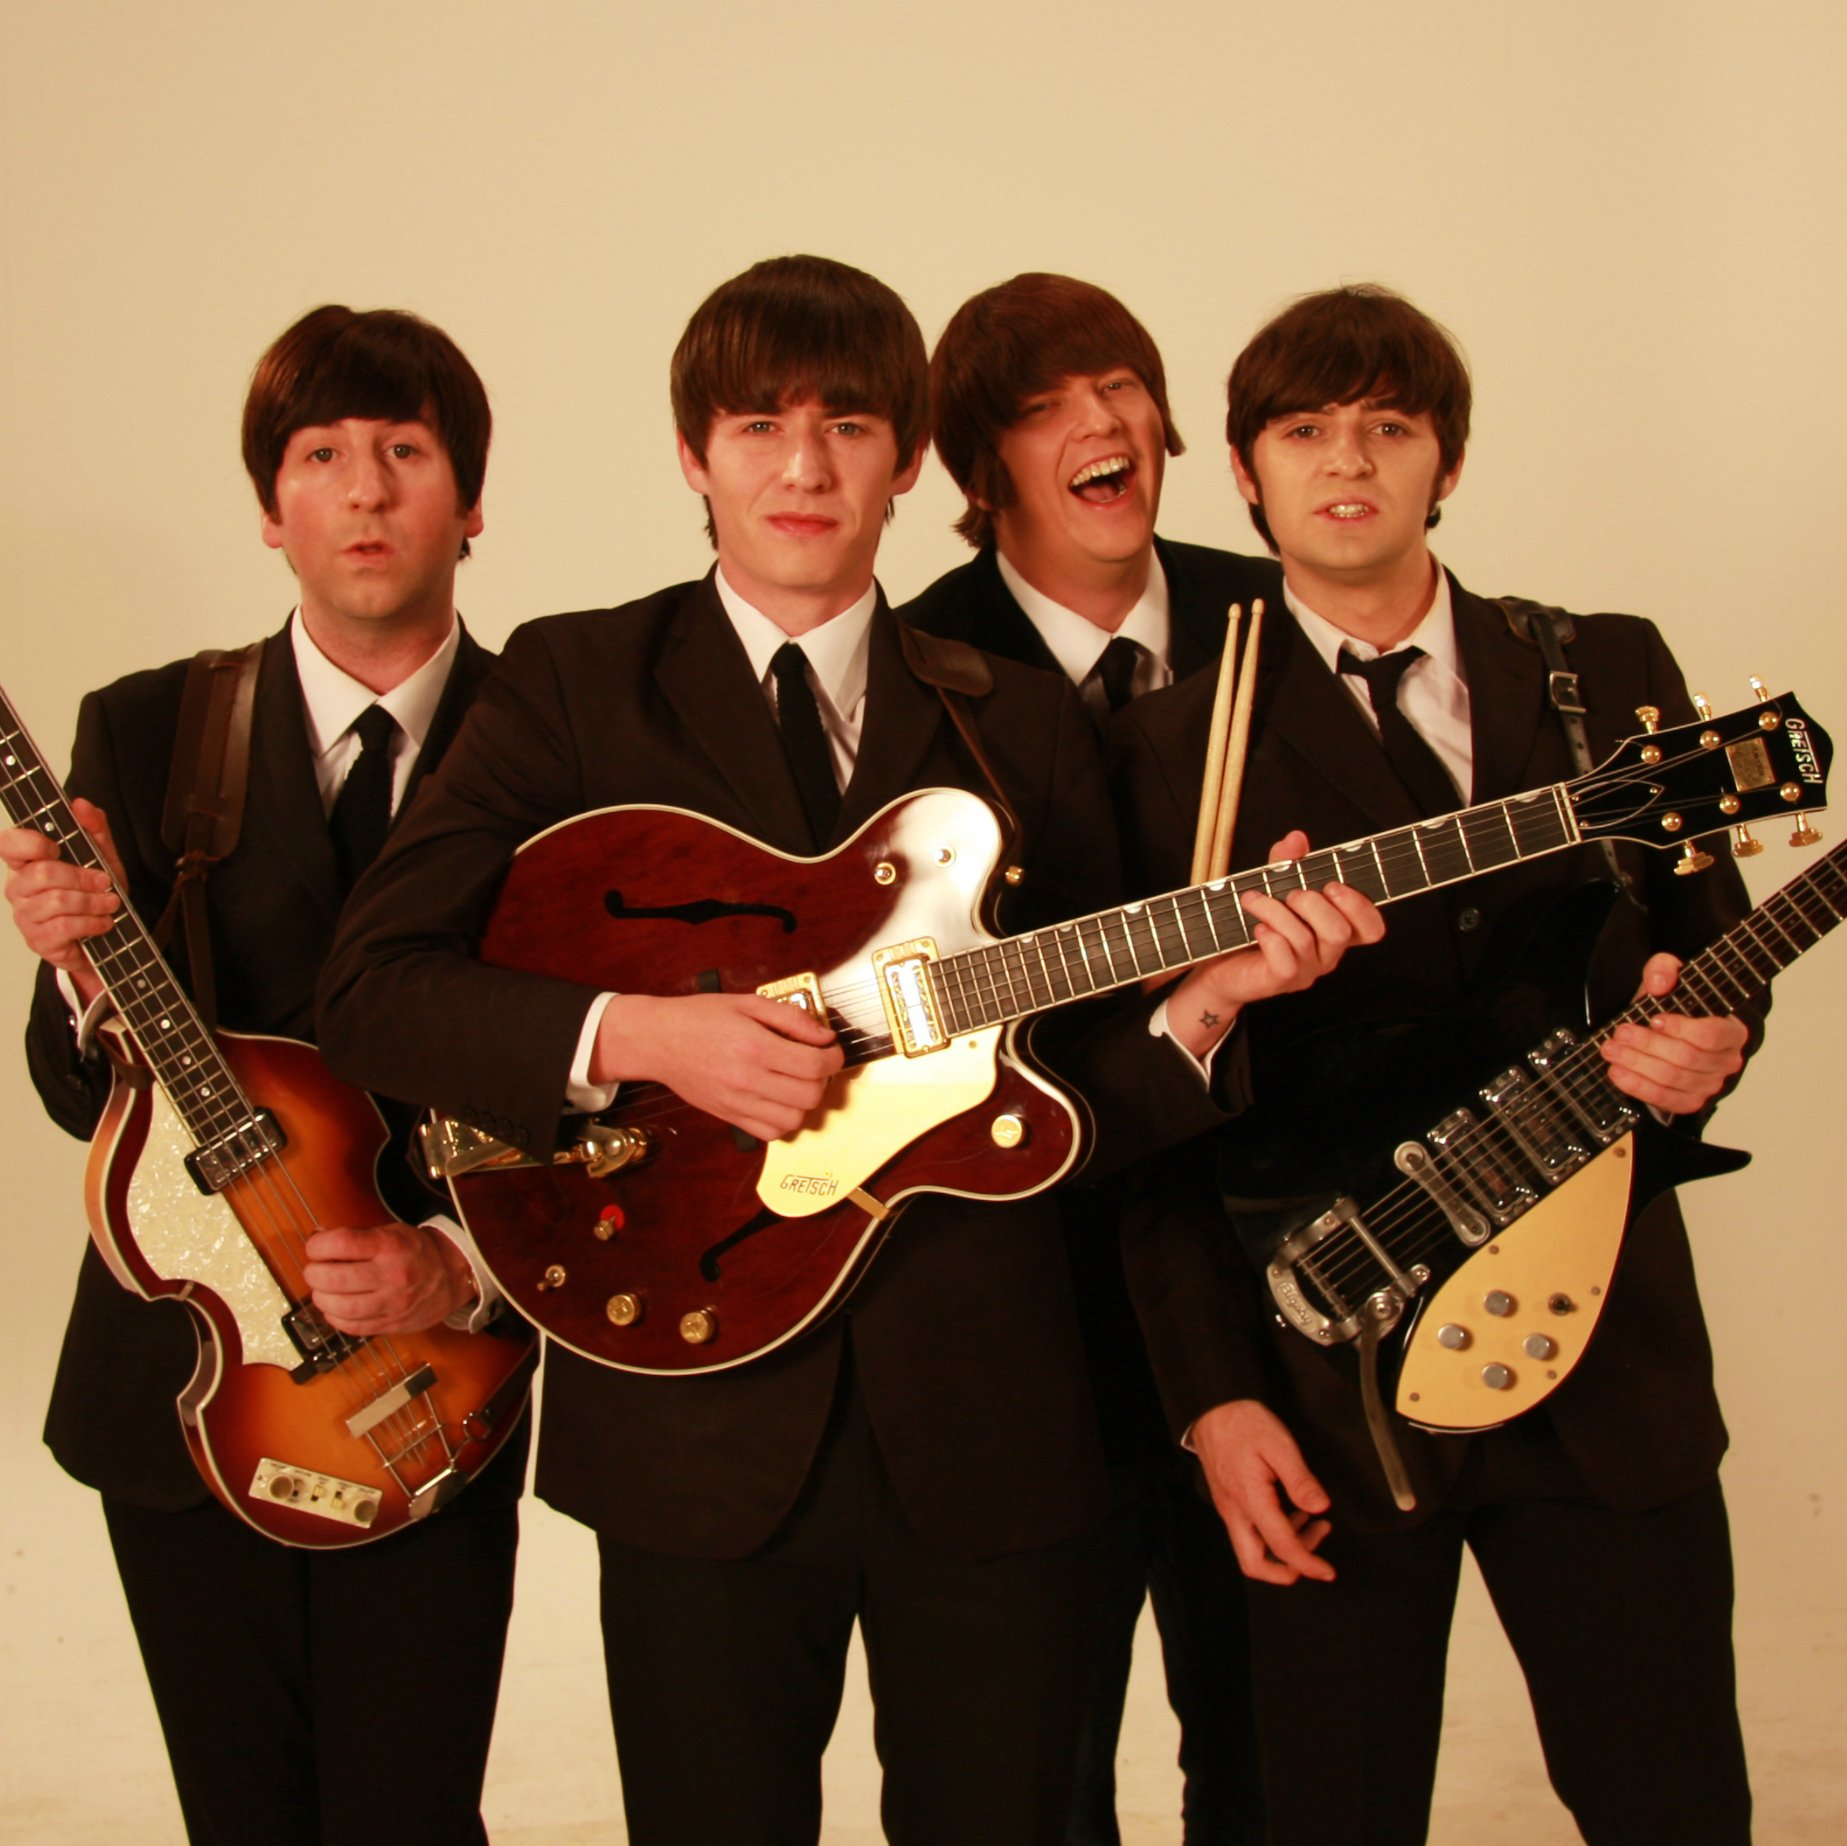 Them Beatles